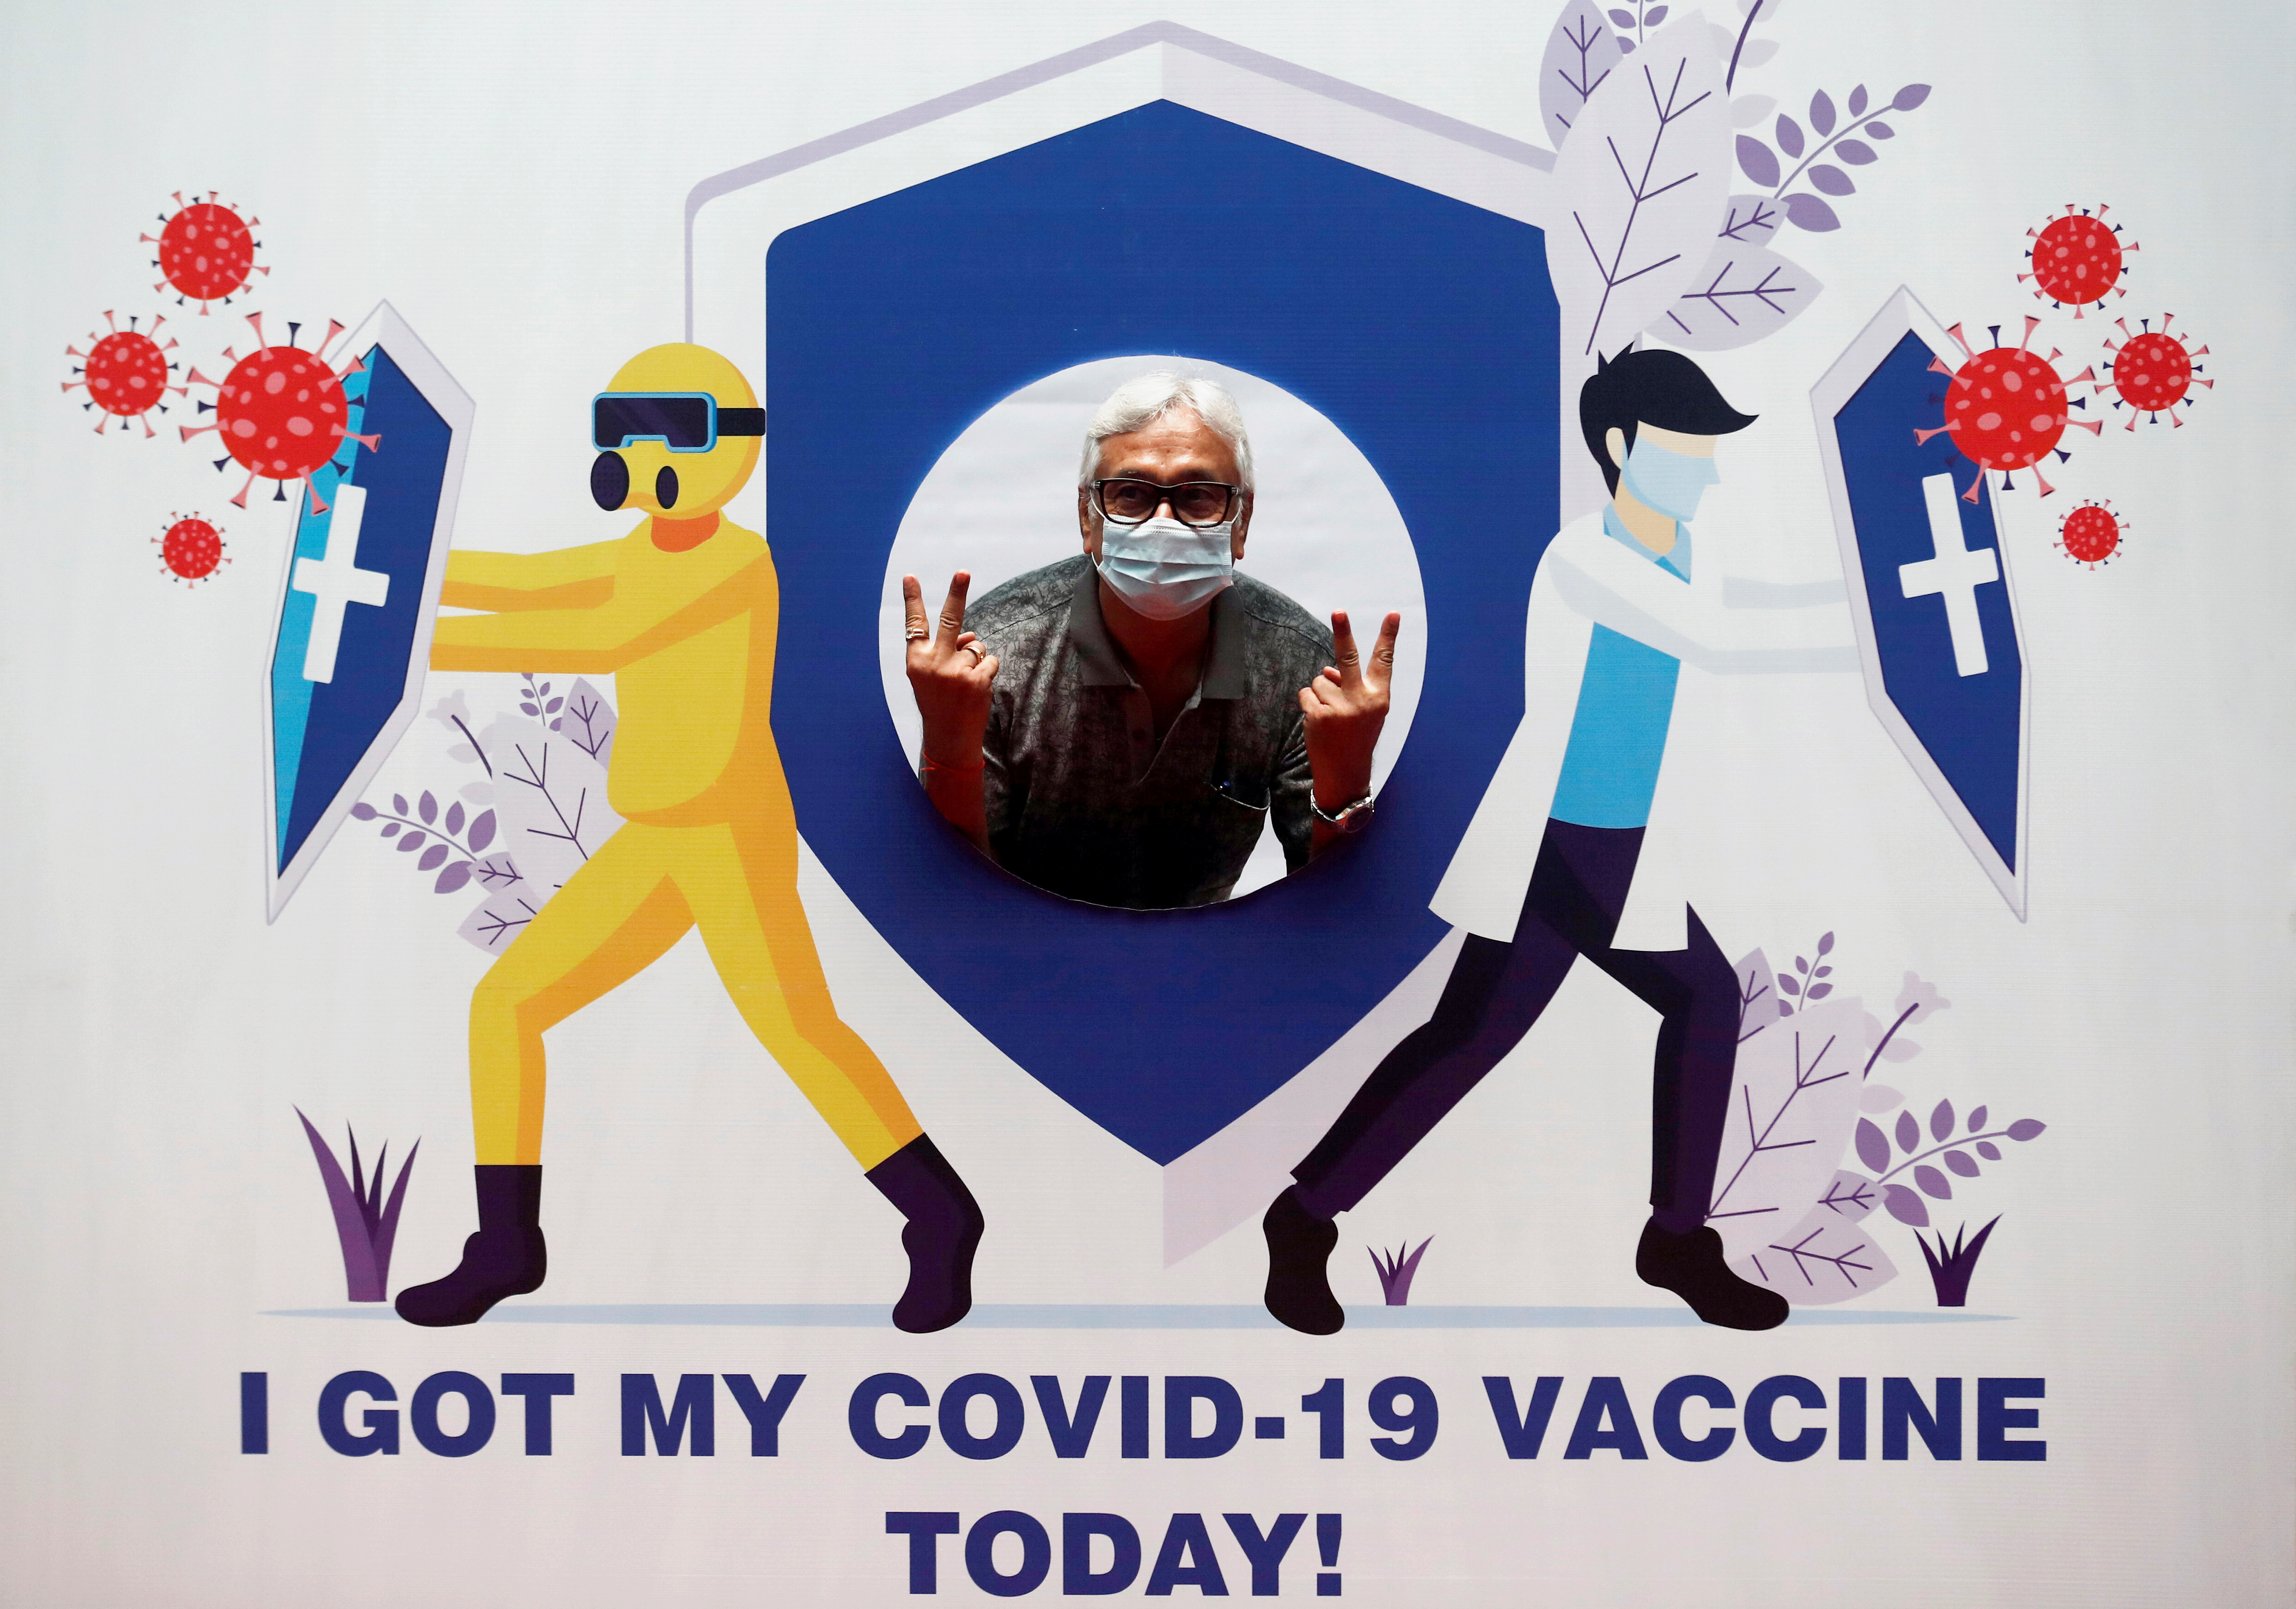 A man poses for a picture with a cardboard cutout after receiving a dose of COVISHIELD, a COVID-19 vaccine manufactured by Serum Institute of India, at a vaccination centre, during the second wave of vaccination for the elderly with comorbidities, amid the spread of the coronavirus disease (COVID-19) in Mumbai, India, March 10, 2021. REUTERS/Francis Mascarenhas/Files